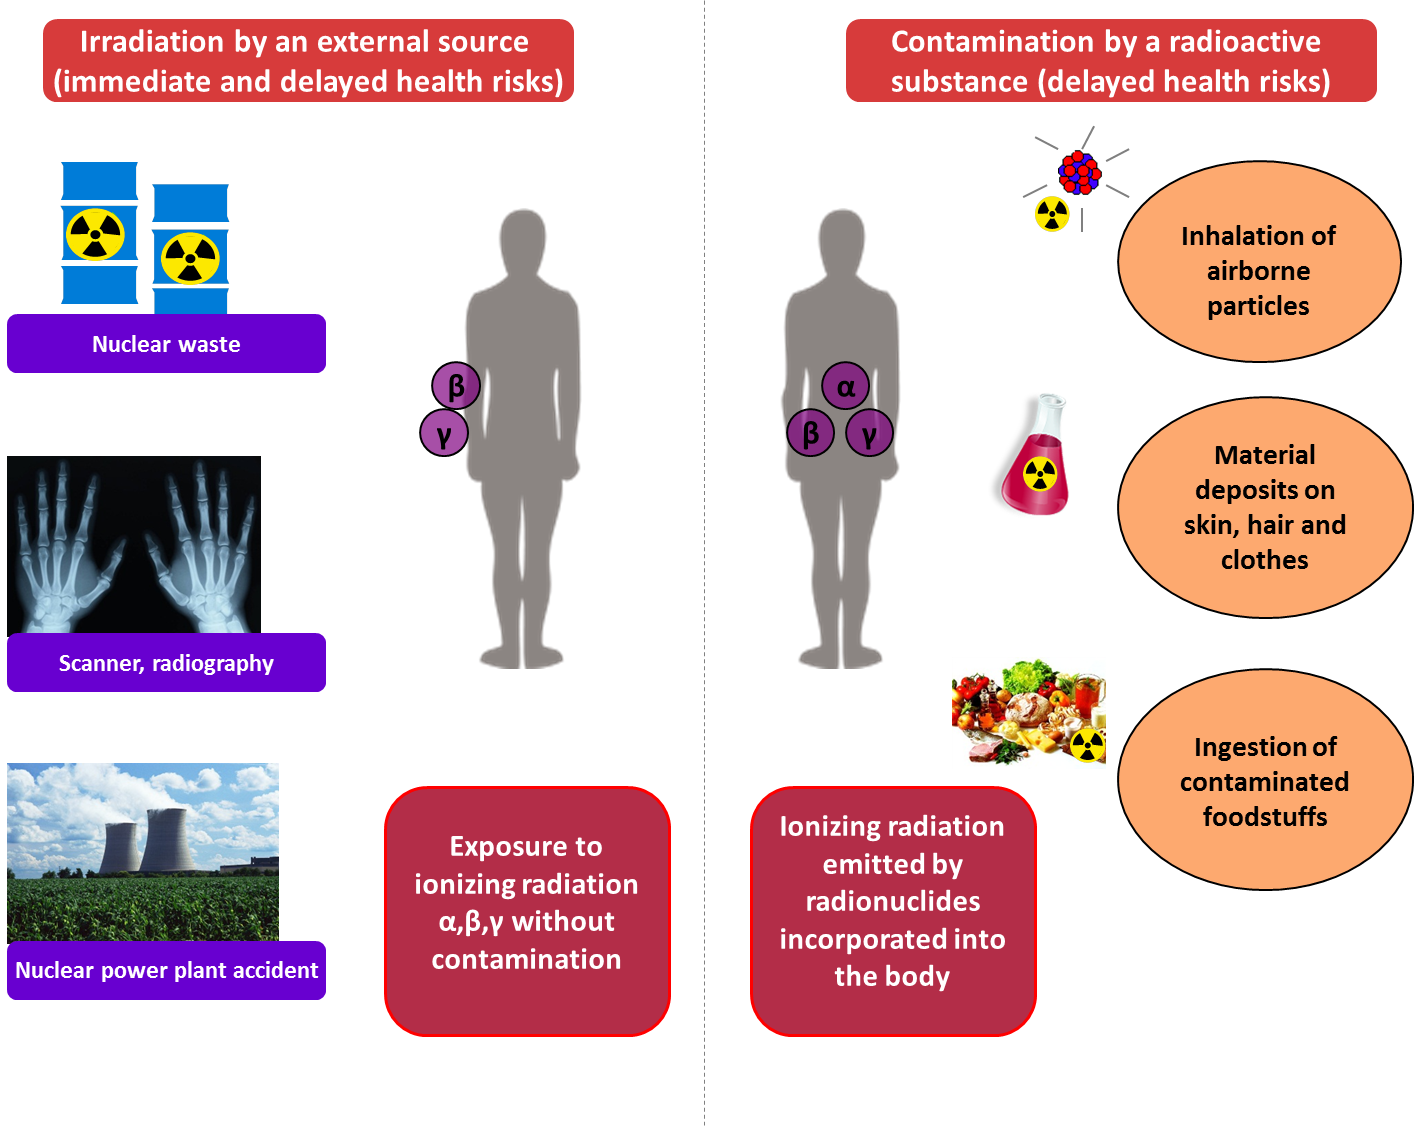 radiation facts and health effects However, although many studies have examined the potential health effects of non-ionizing radiation from radar, microwave ovens, cell phones, and other sources, there is currently no consistent evidence that non-ionizing radiation increases cancer risk.